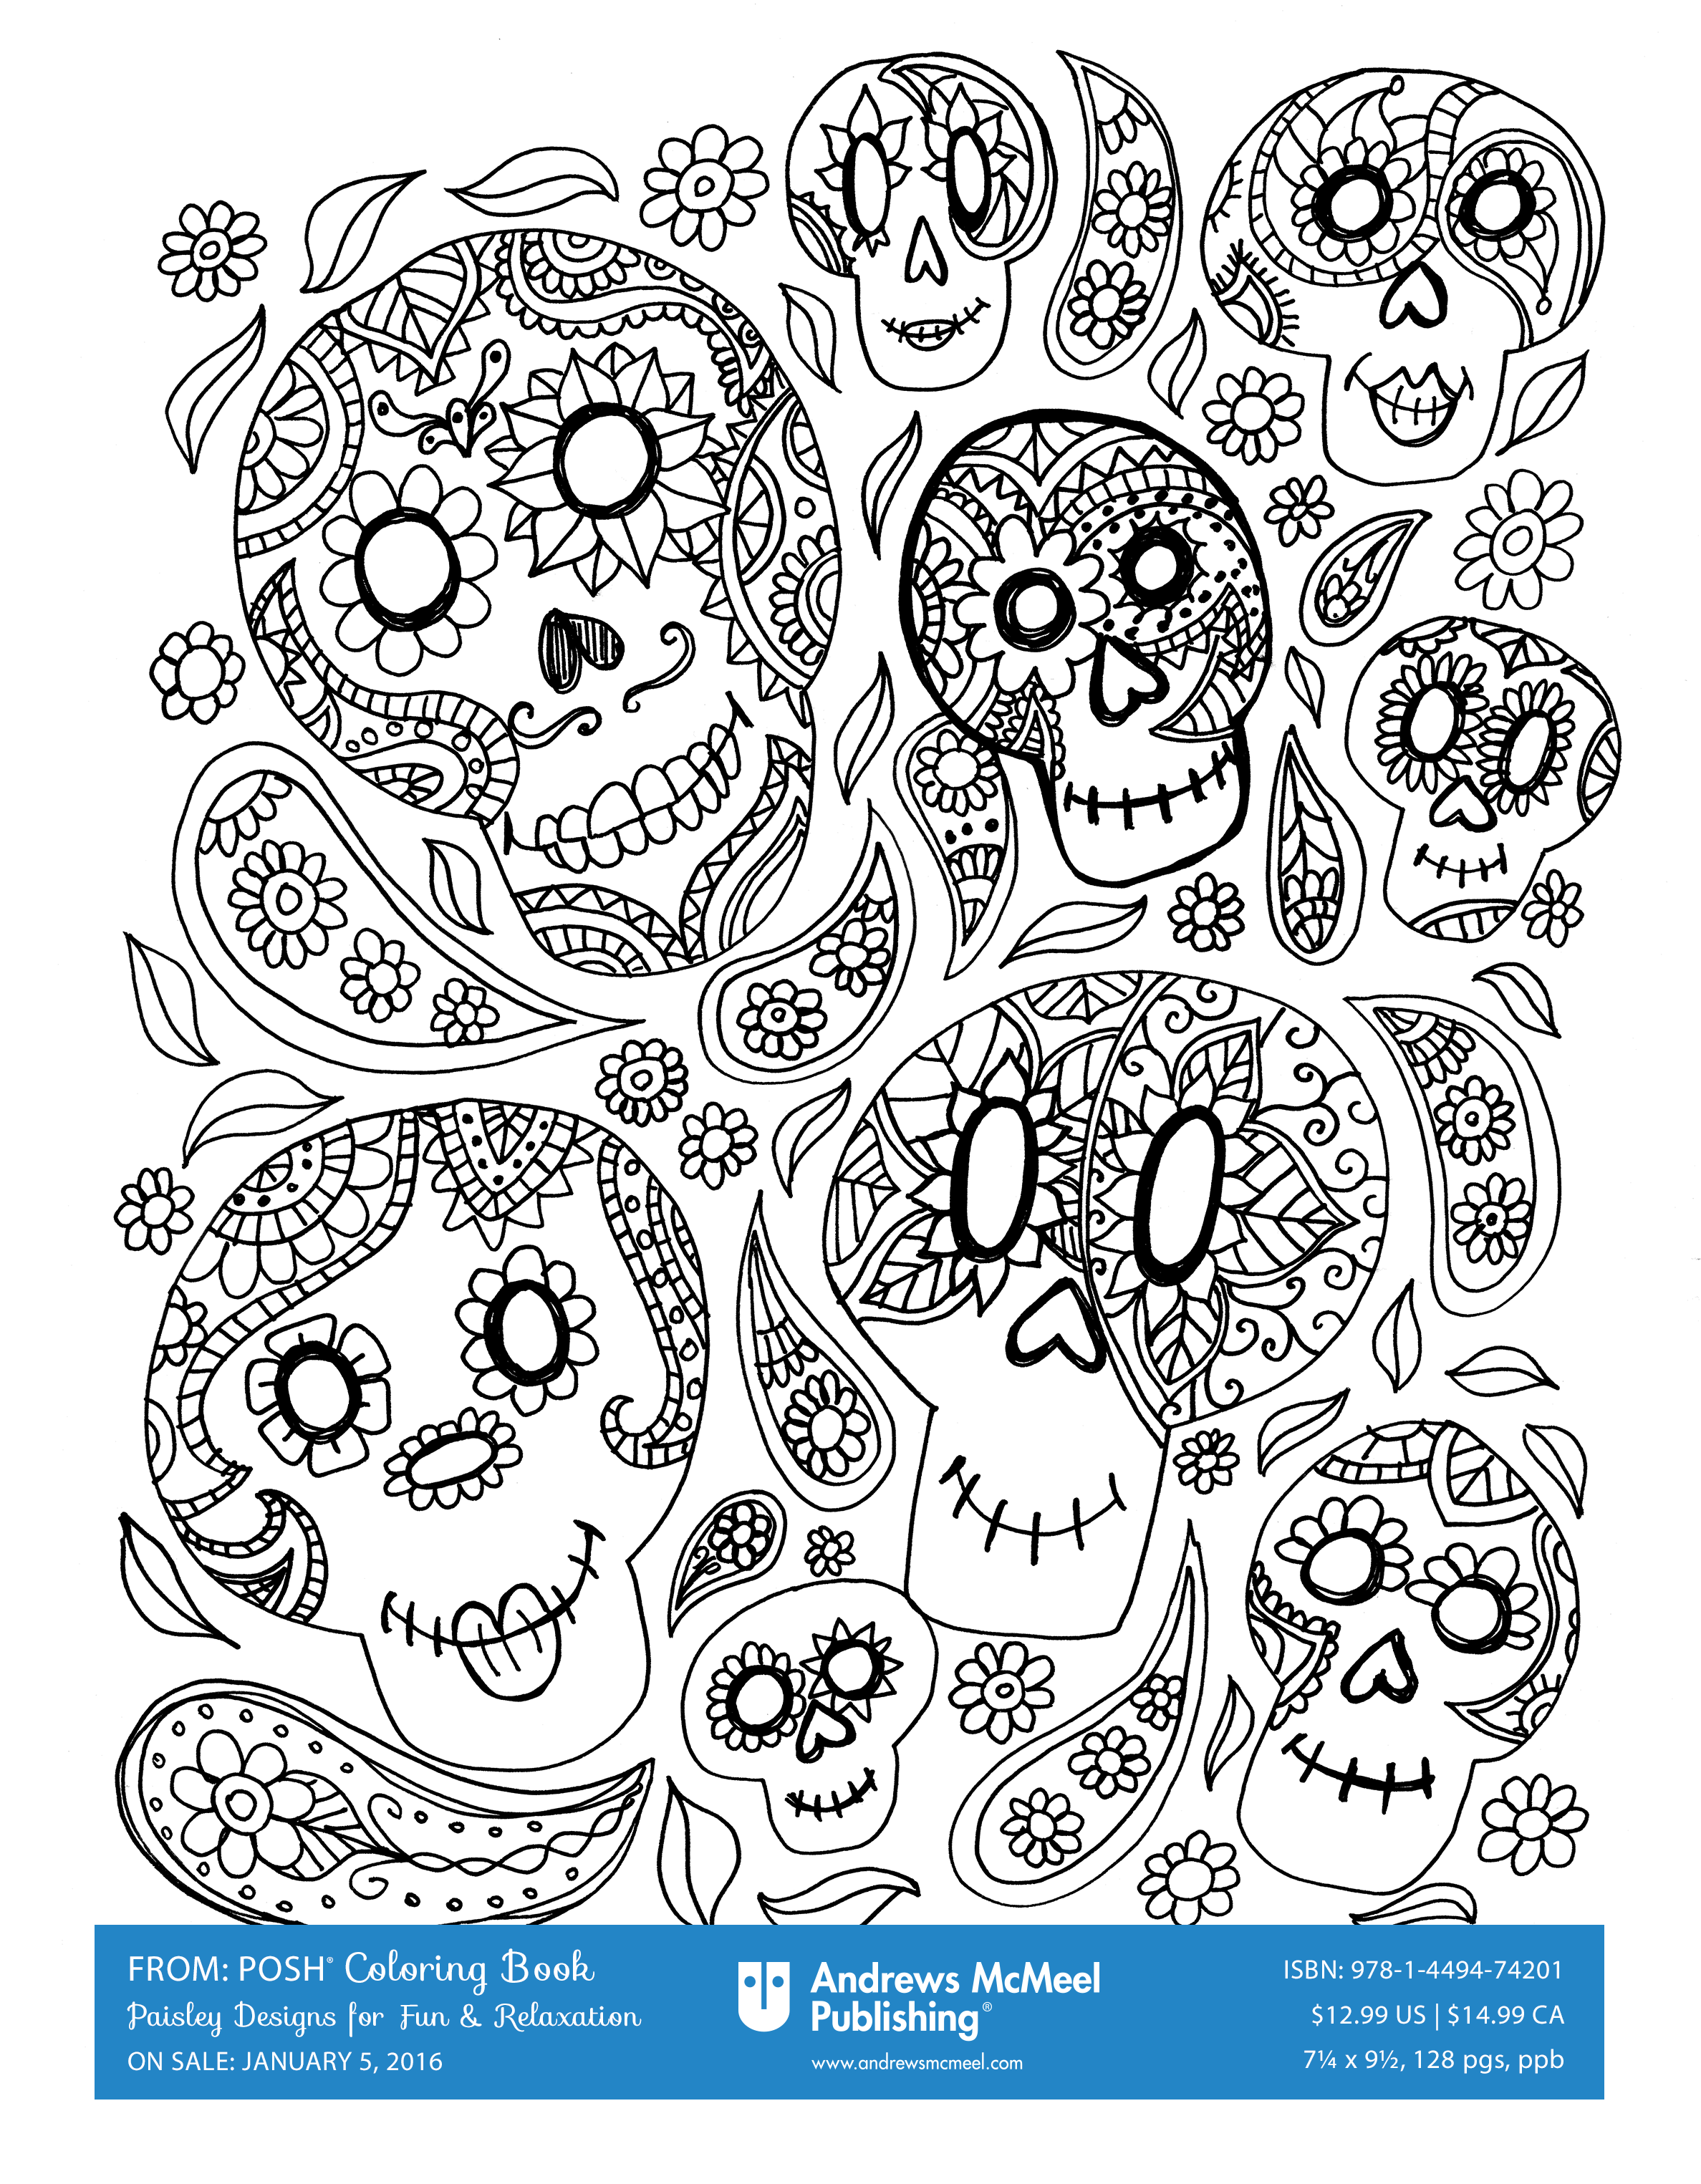 Decorate For Halloween With A Halloween Themed Coloring